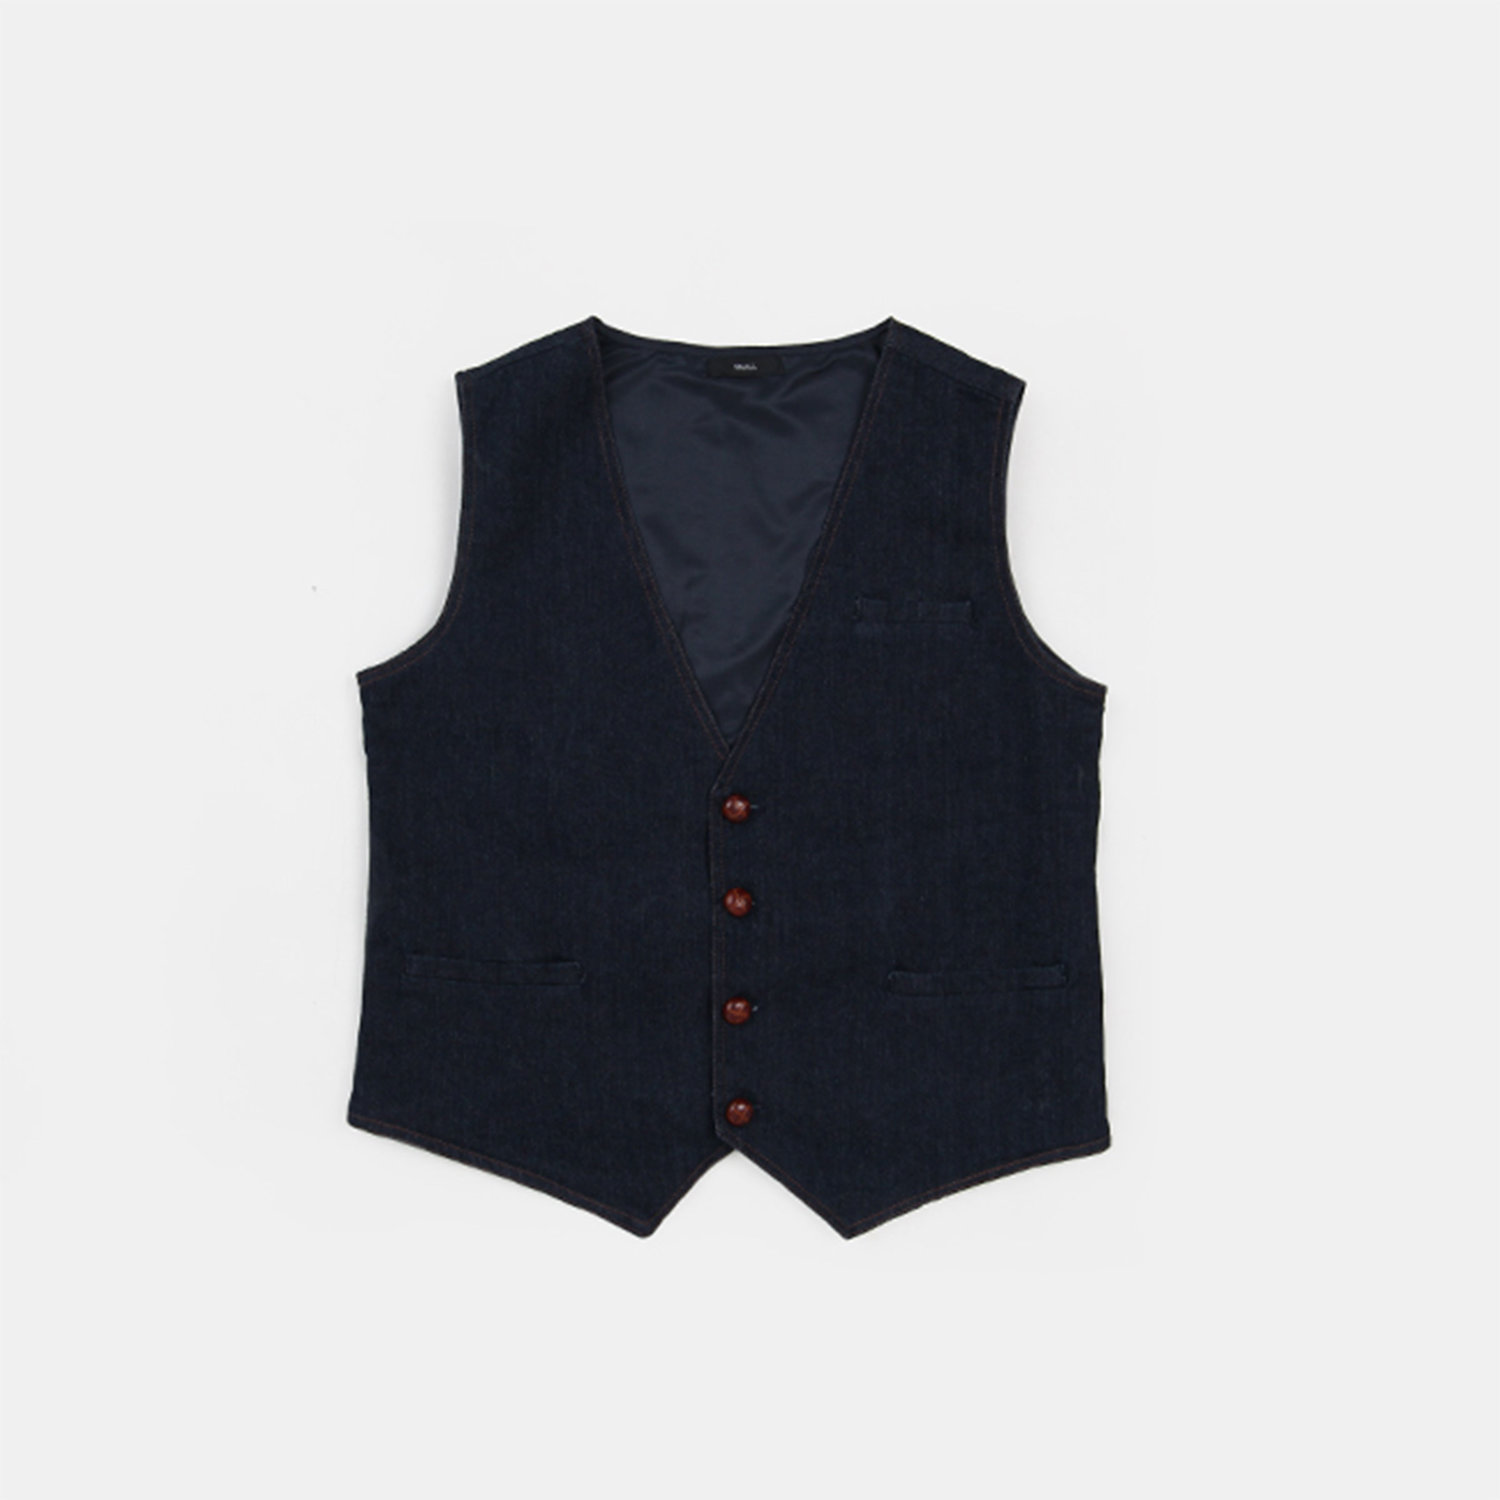 Tailored Projects -  Jacket - Uniform Vest.jpg